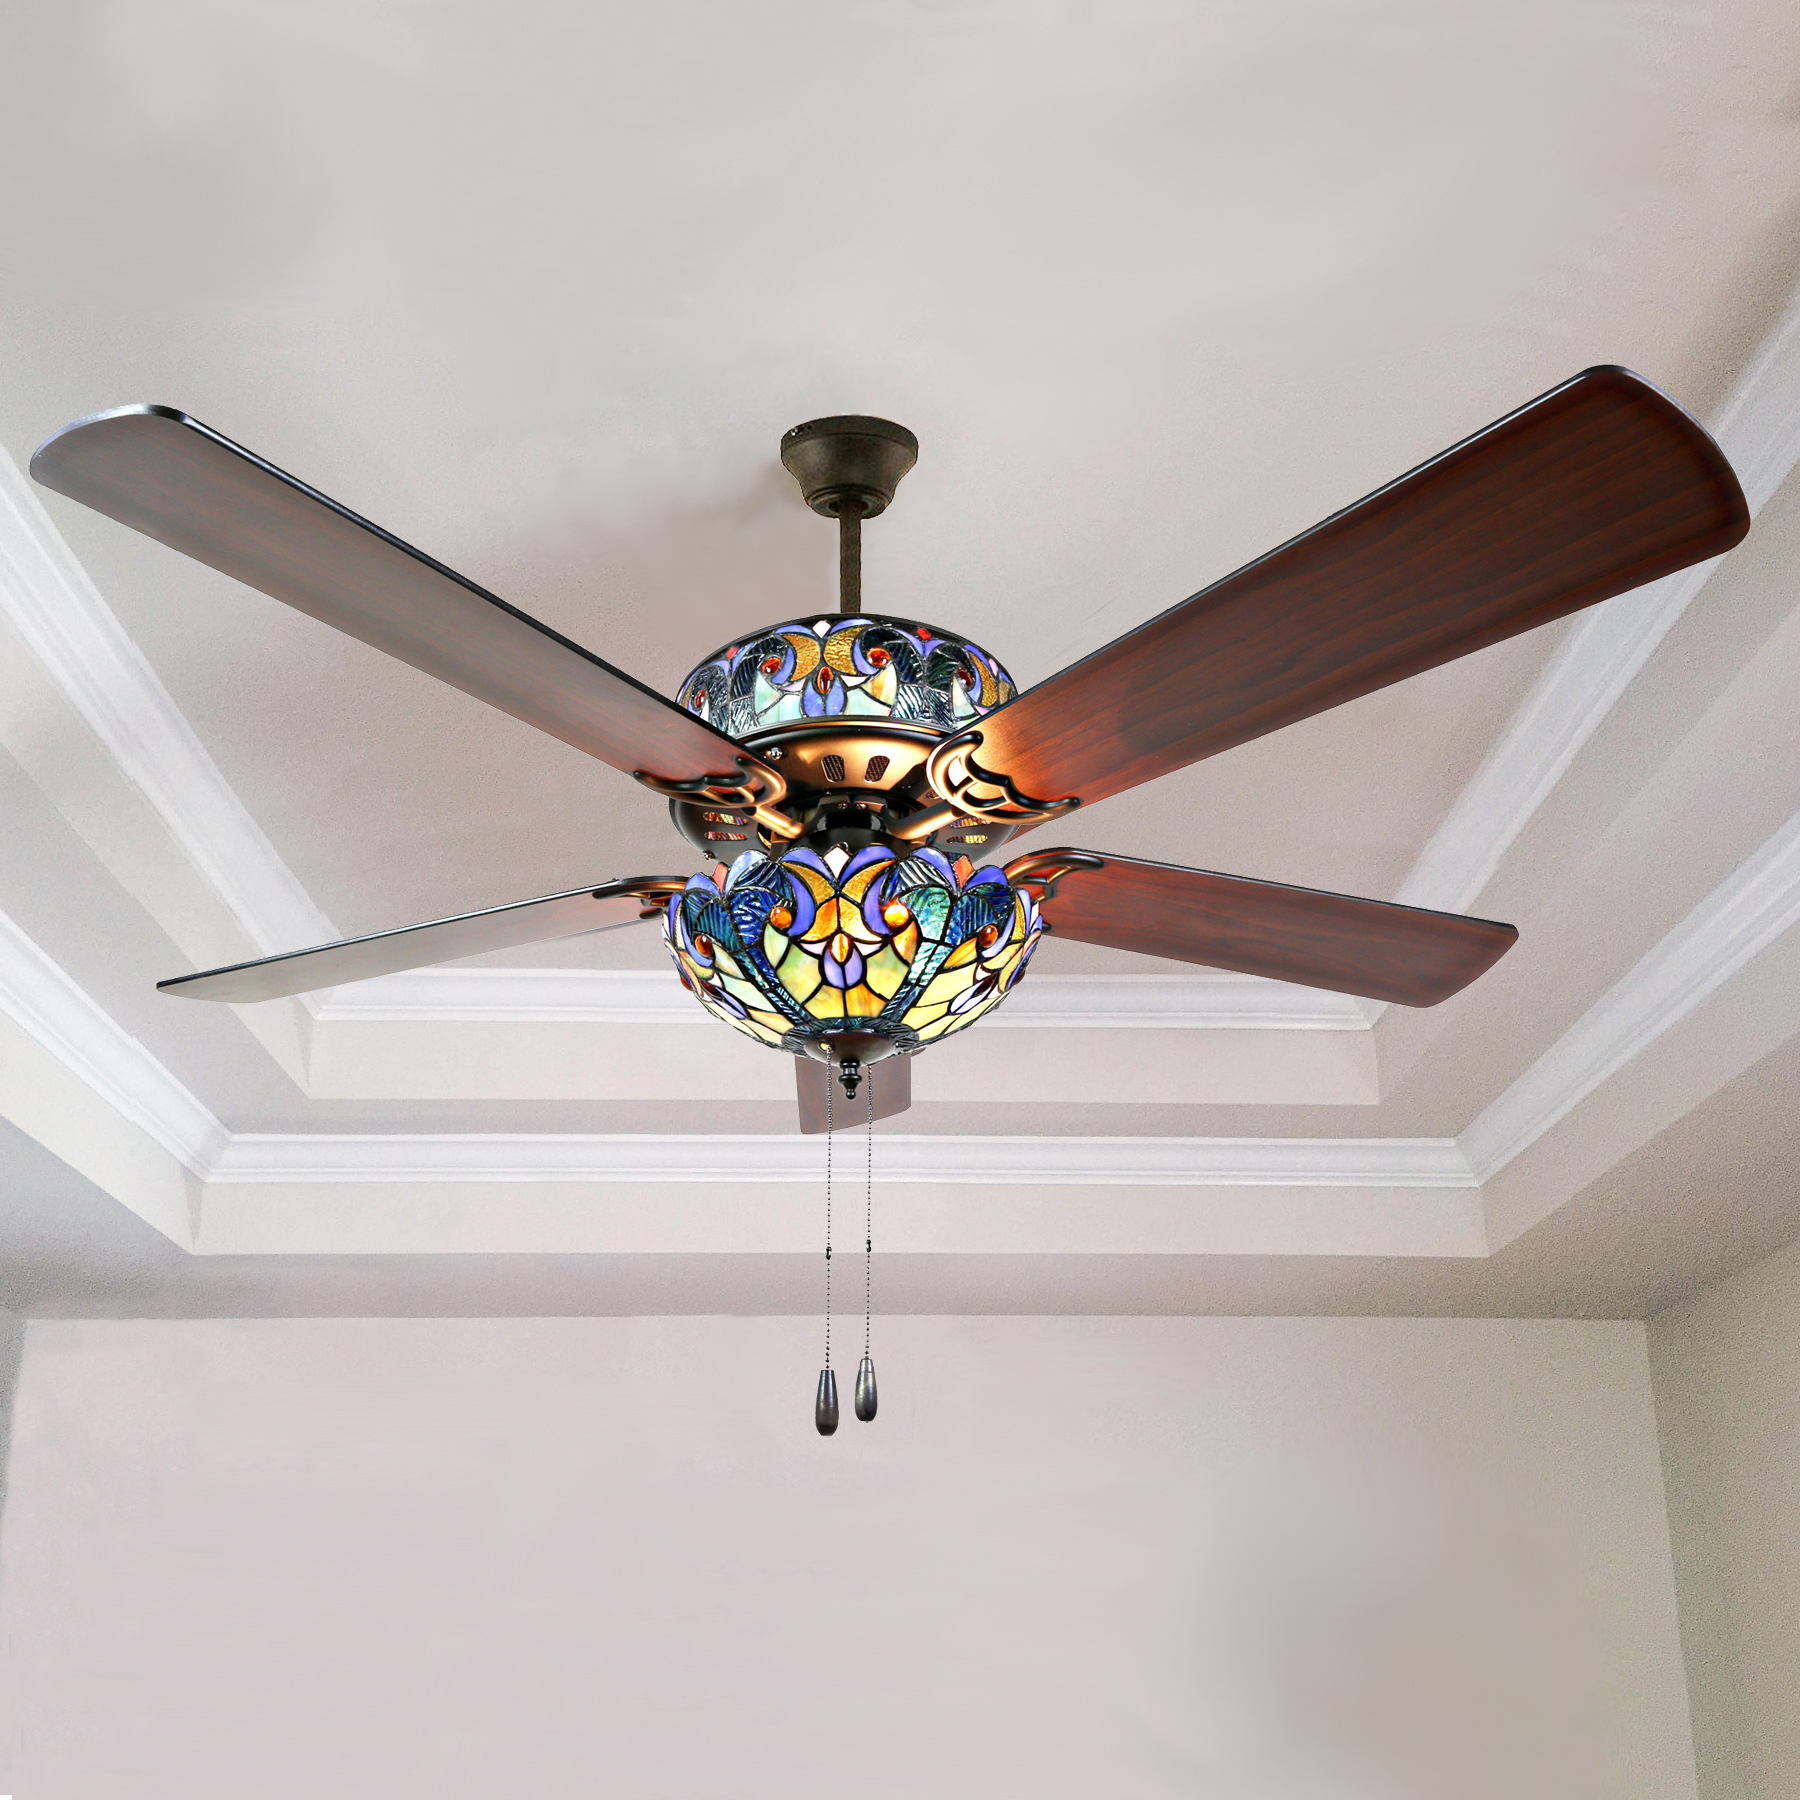 Wood Ceiling Fan 52inch 3 Leaf Led 40w Included With 2 Size Rod For Livingroom Bedroom Dinning Room And Digestion Helping Lights & Lighting Ceiling Lights & Fans